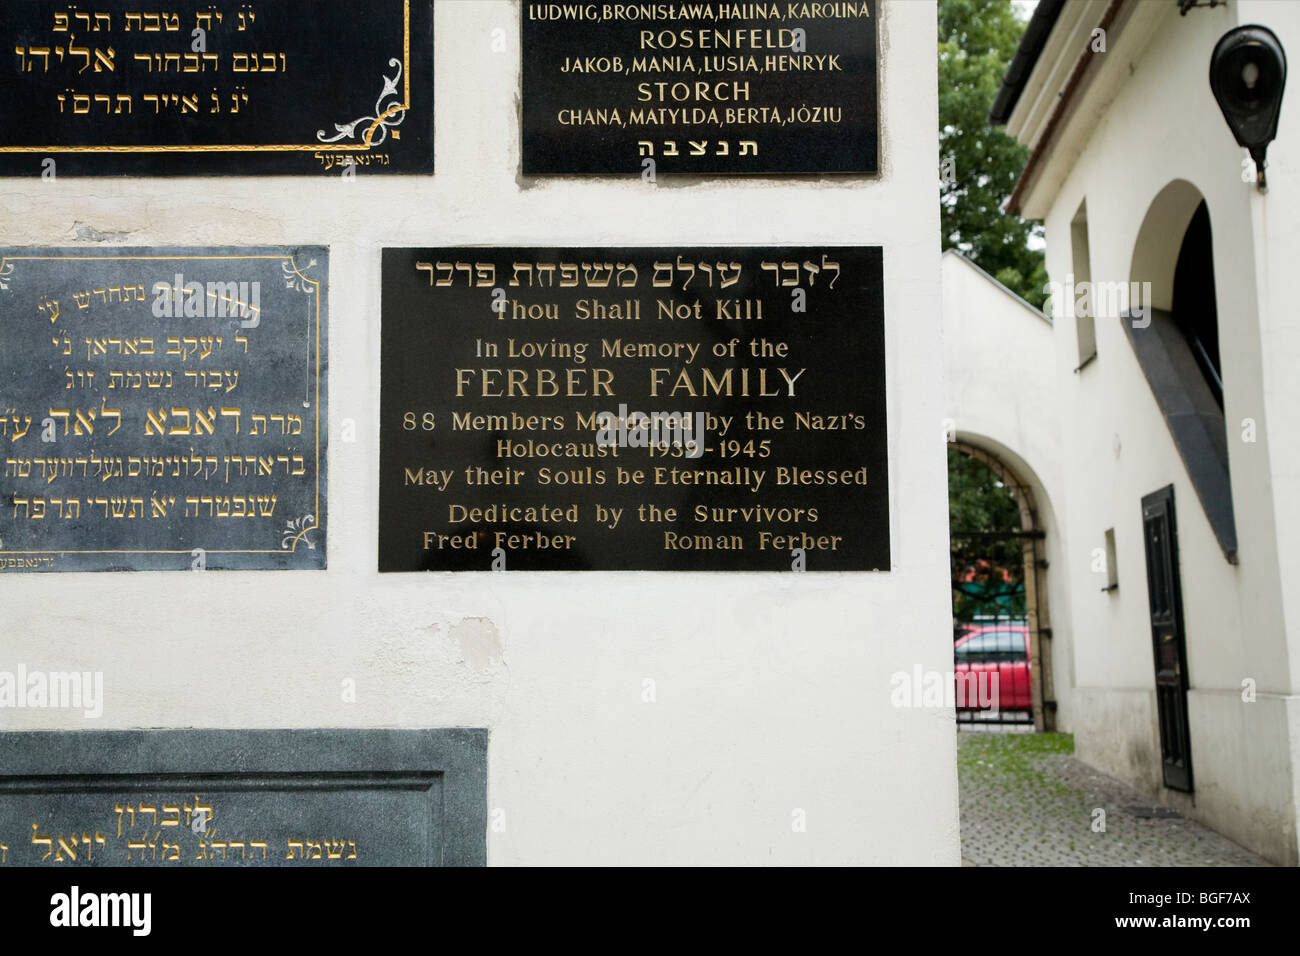 Memorial plaques at the Remuh Synagogue (Synagoga Remuh) to the jewish victims of the Nazis. Kazimierz, Krakow. Stock Photo